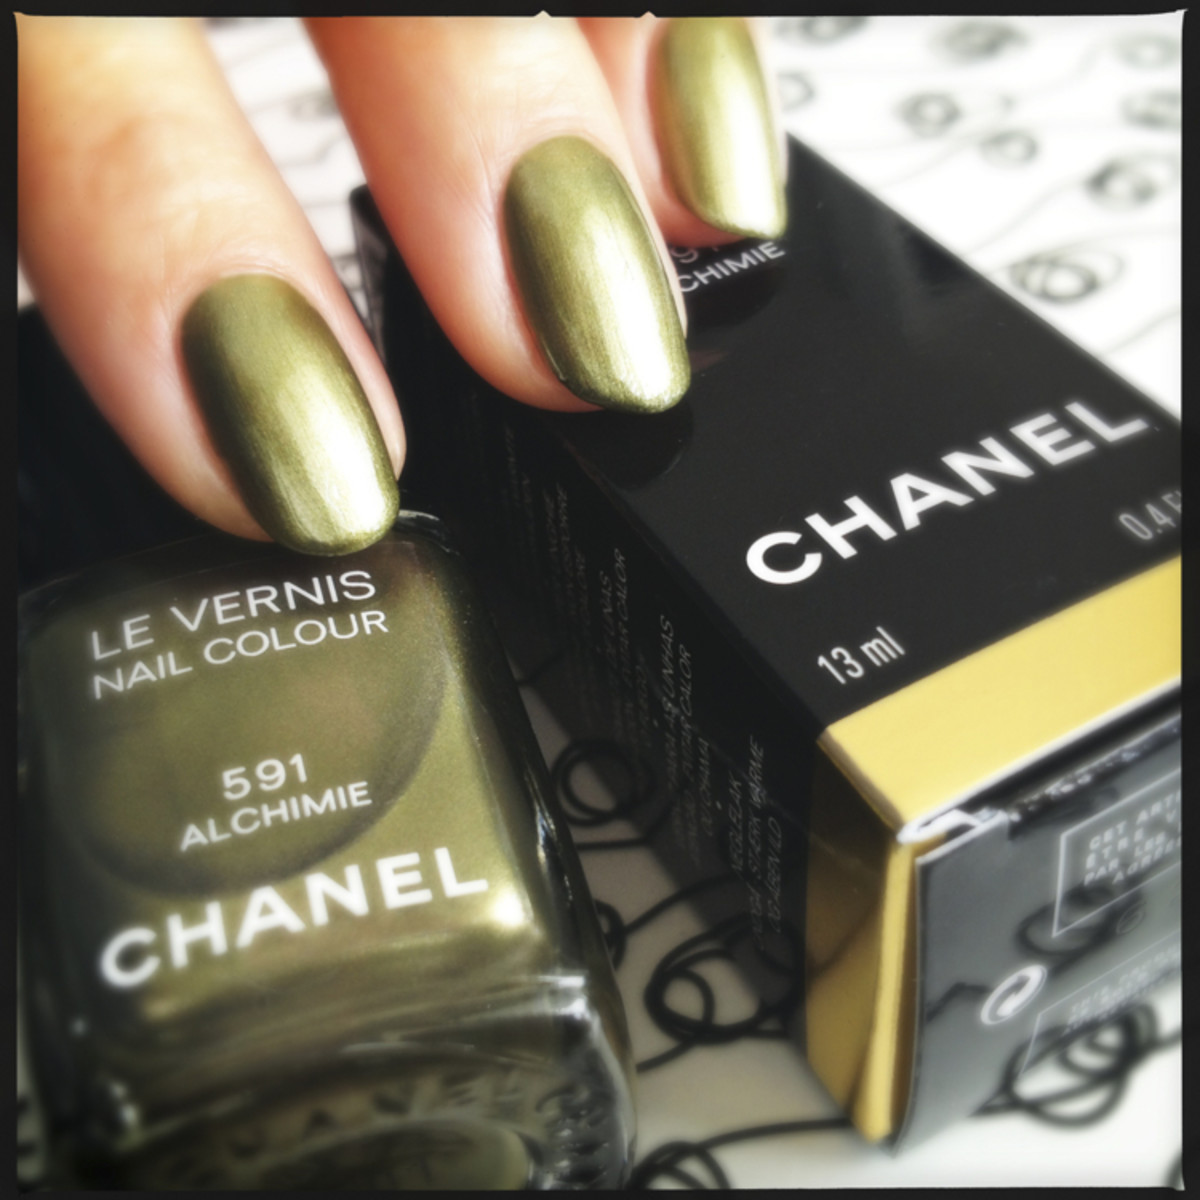 Chanel Alchimie 591